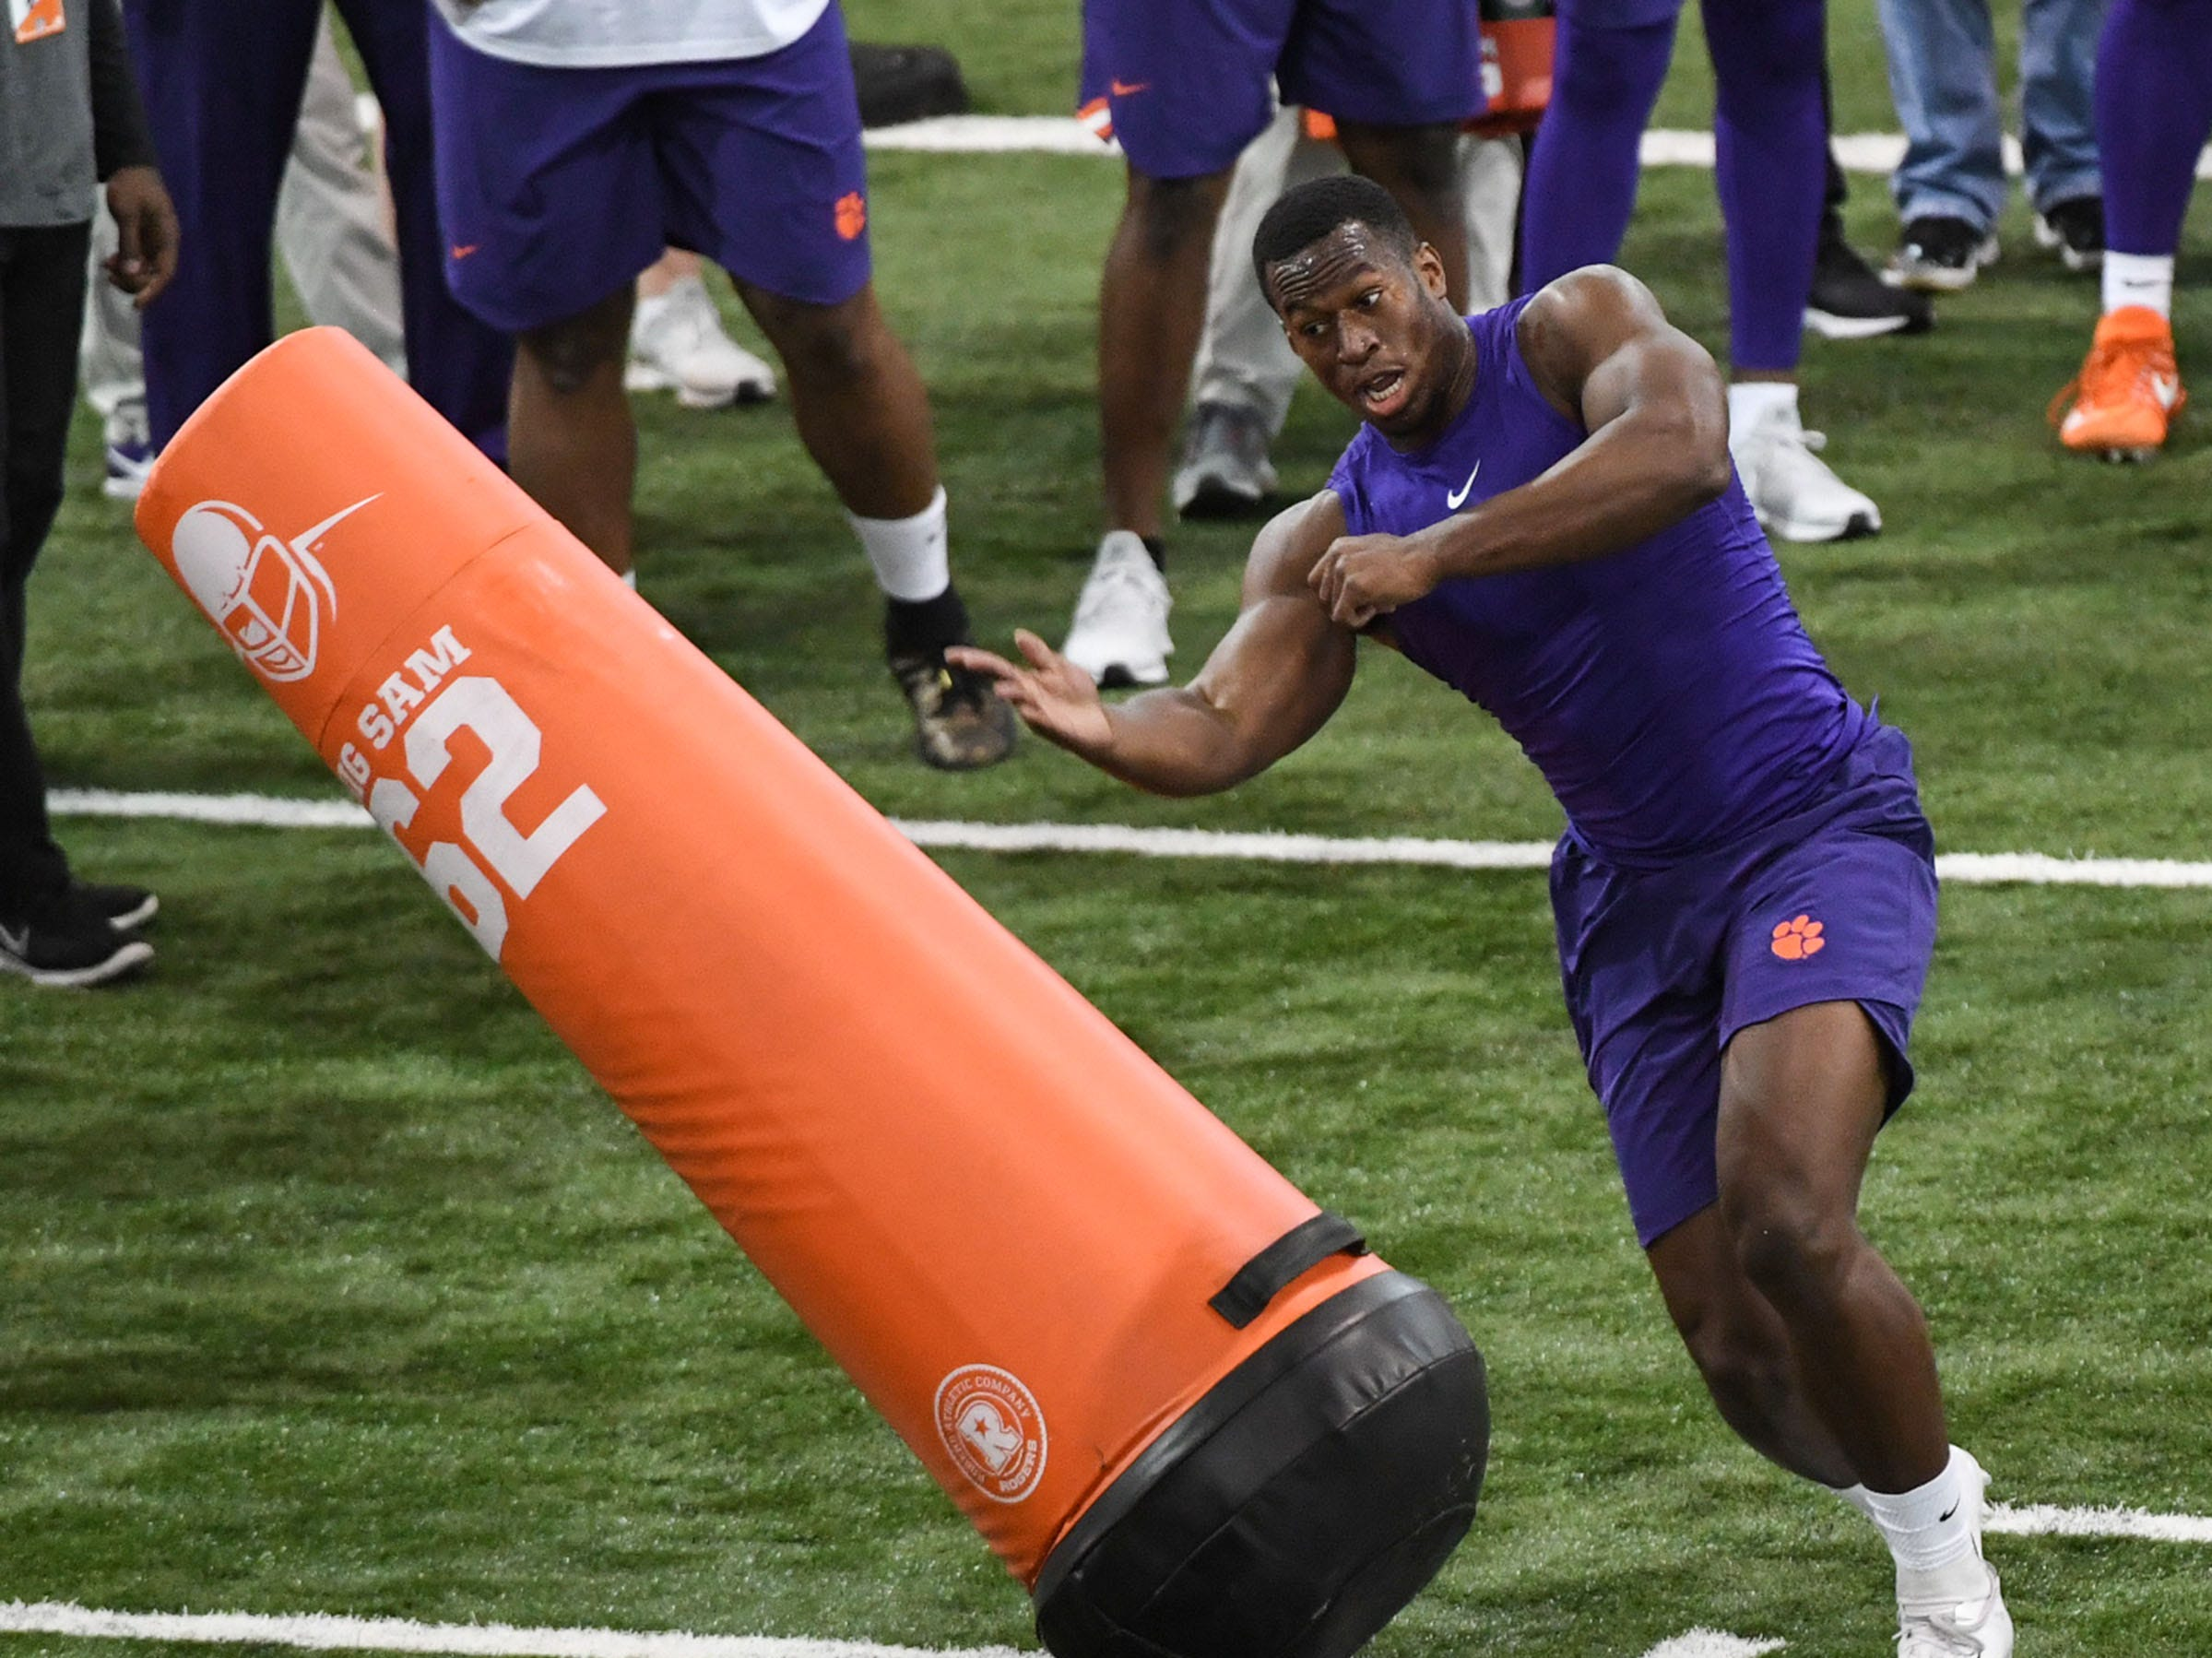 Defender Tre Lamar III runs through a drill during Clemson Pro Day at the Poe Indoor Facility in Clemson, S.C. Thursday, March 14, 2019.